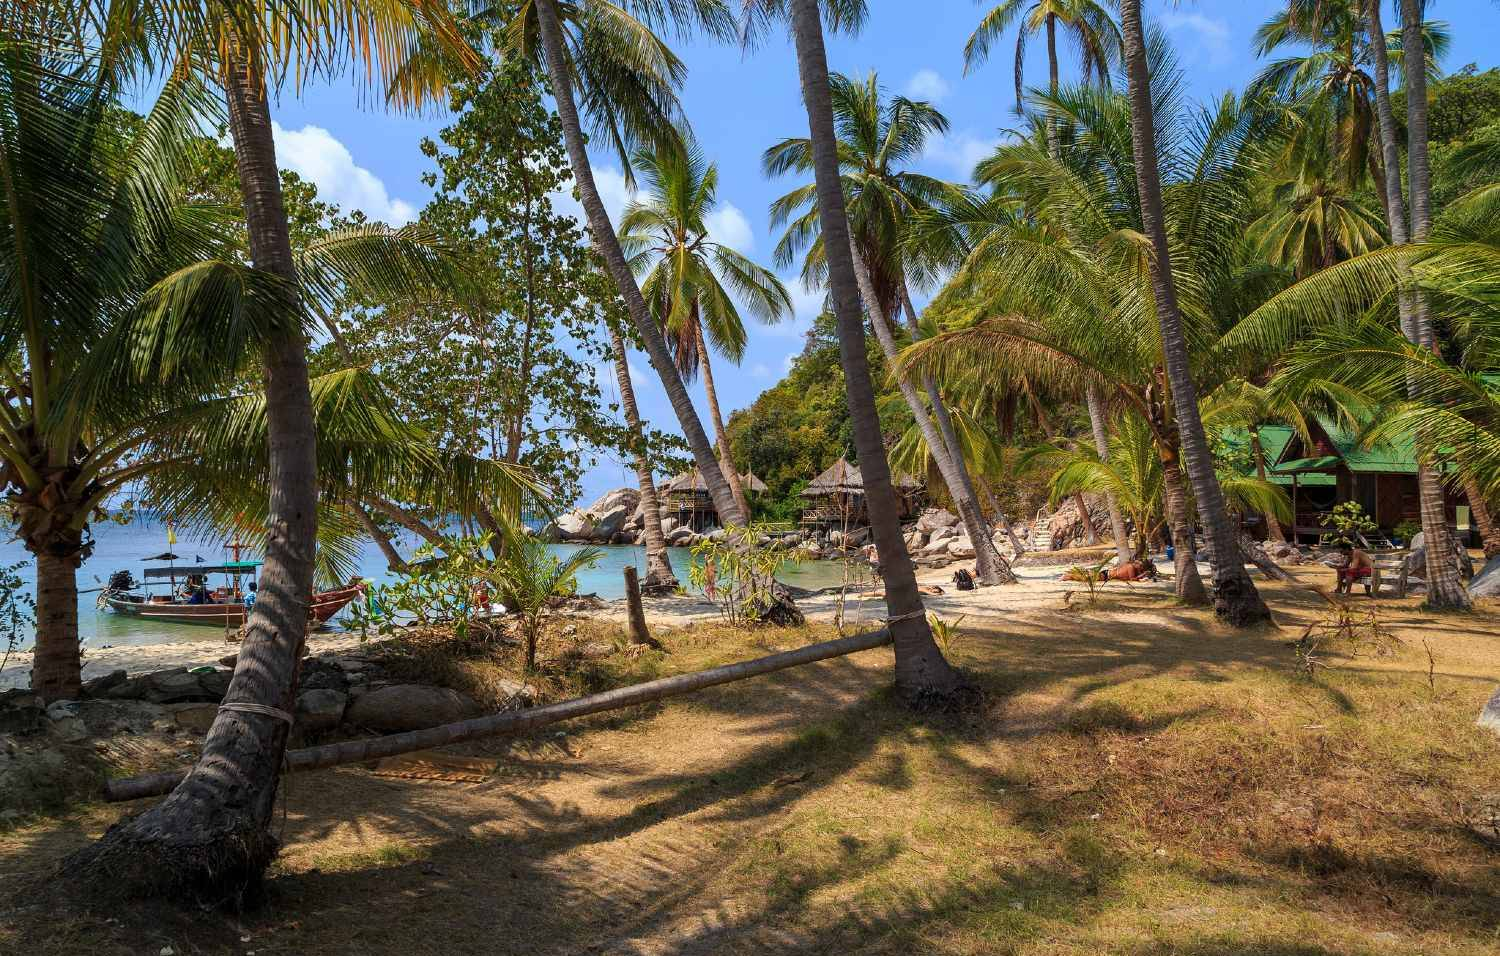 Shadow under the palm trees on the beach of Sai Nuan in Koh Tao